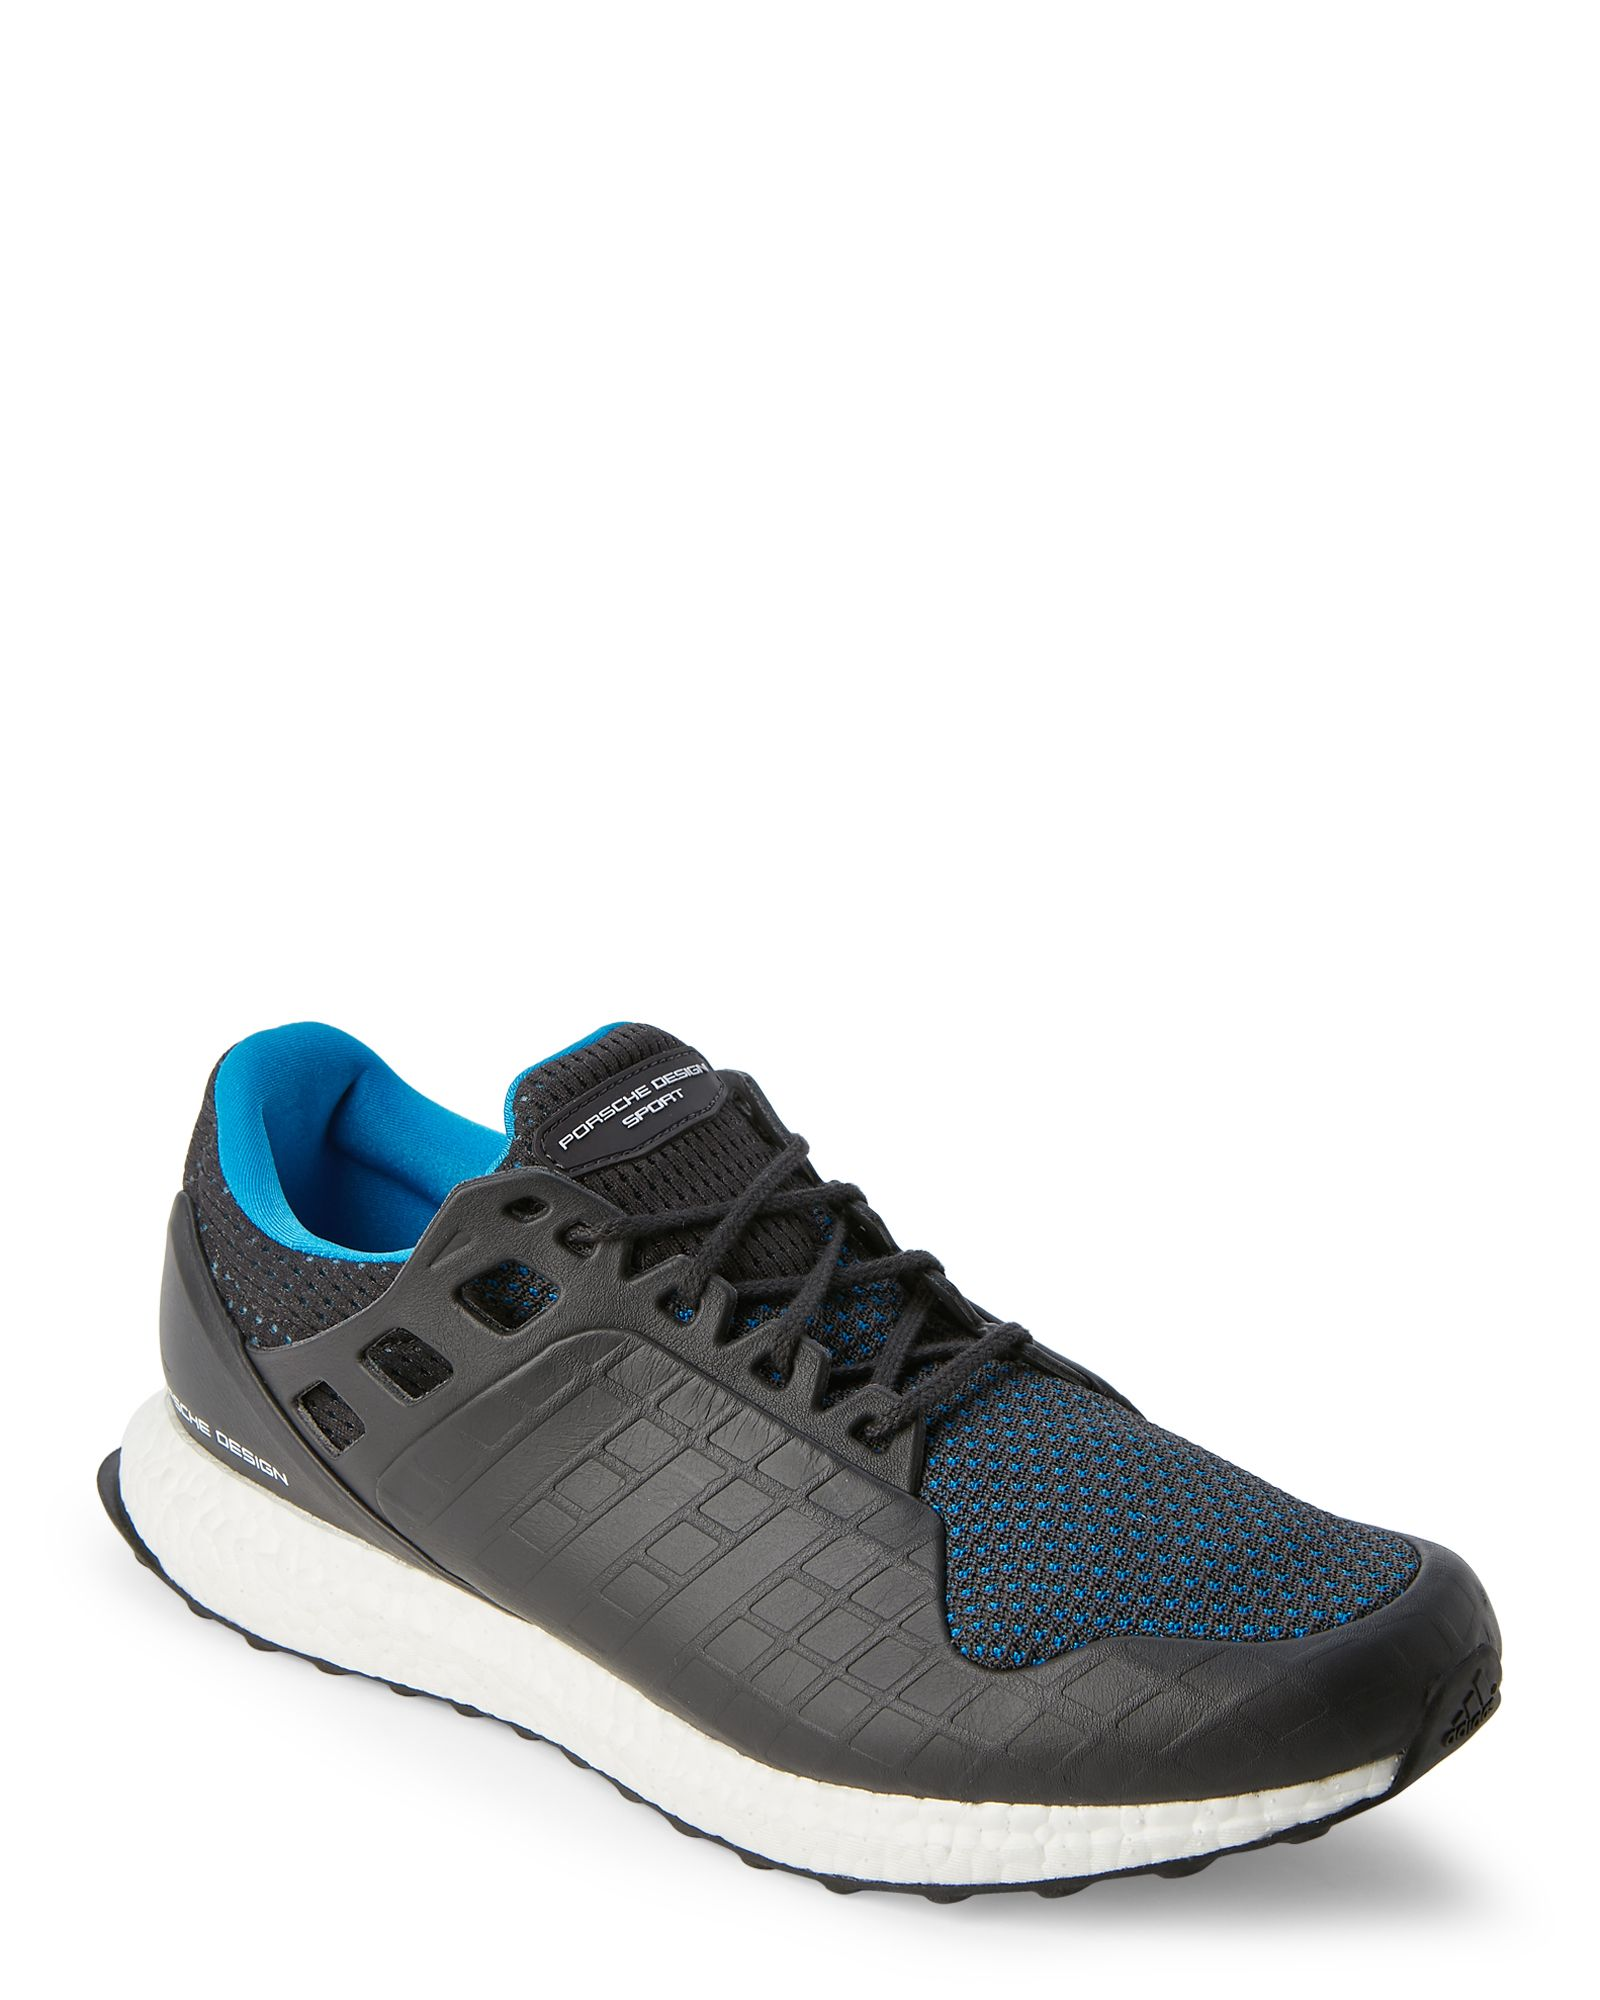 ef0e5d41b Adidas Porsche Design Sport Grey   Blue PDS Ultra Boost Trail Sneakers